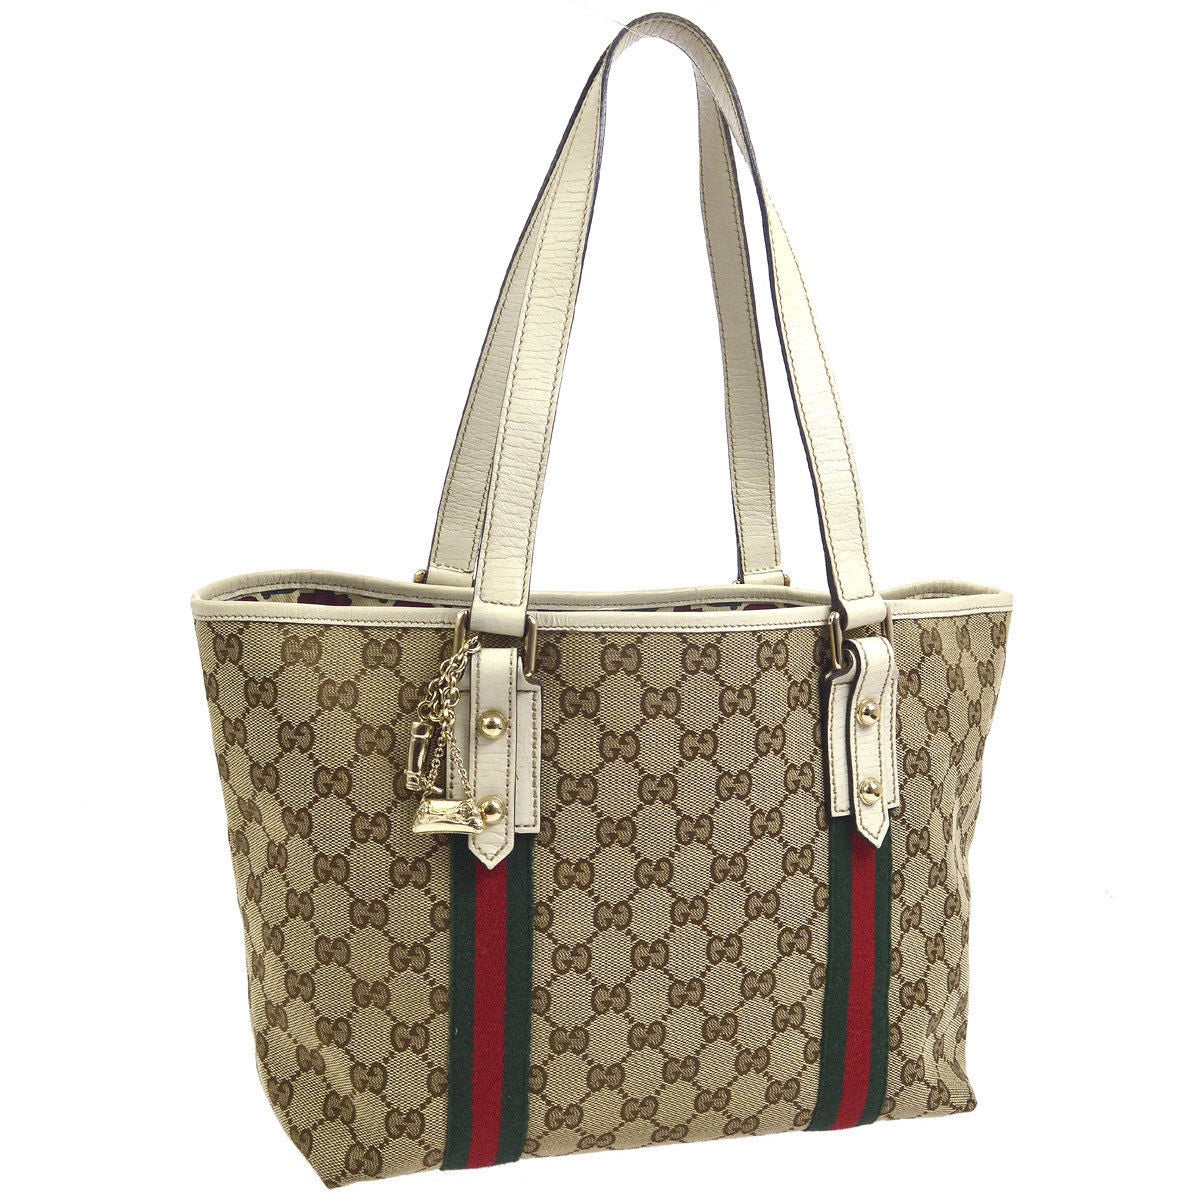 Roblox Backpack Closet Buy Gucci Tote Bag Canvas Up To 76 Off Free Shipping